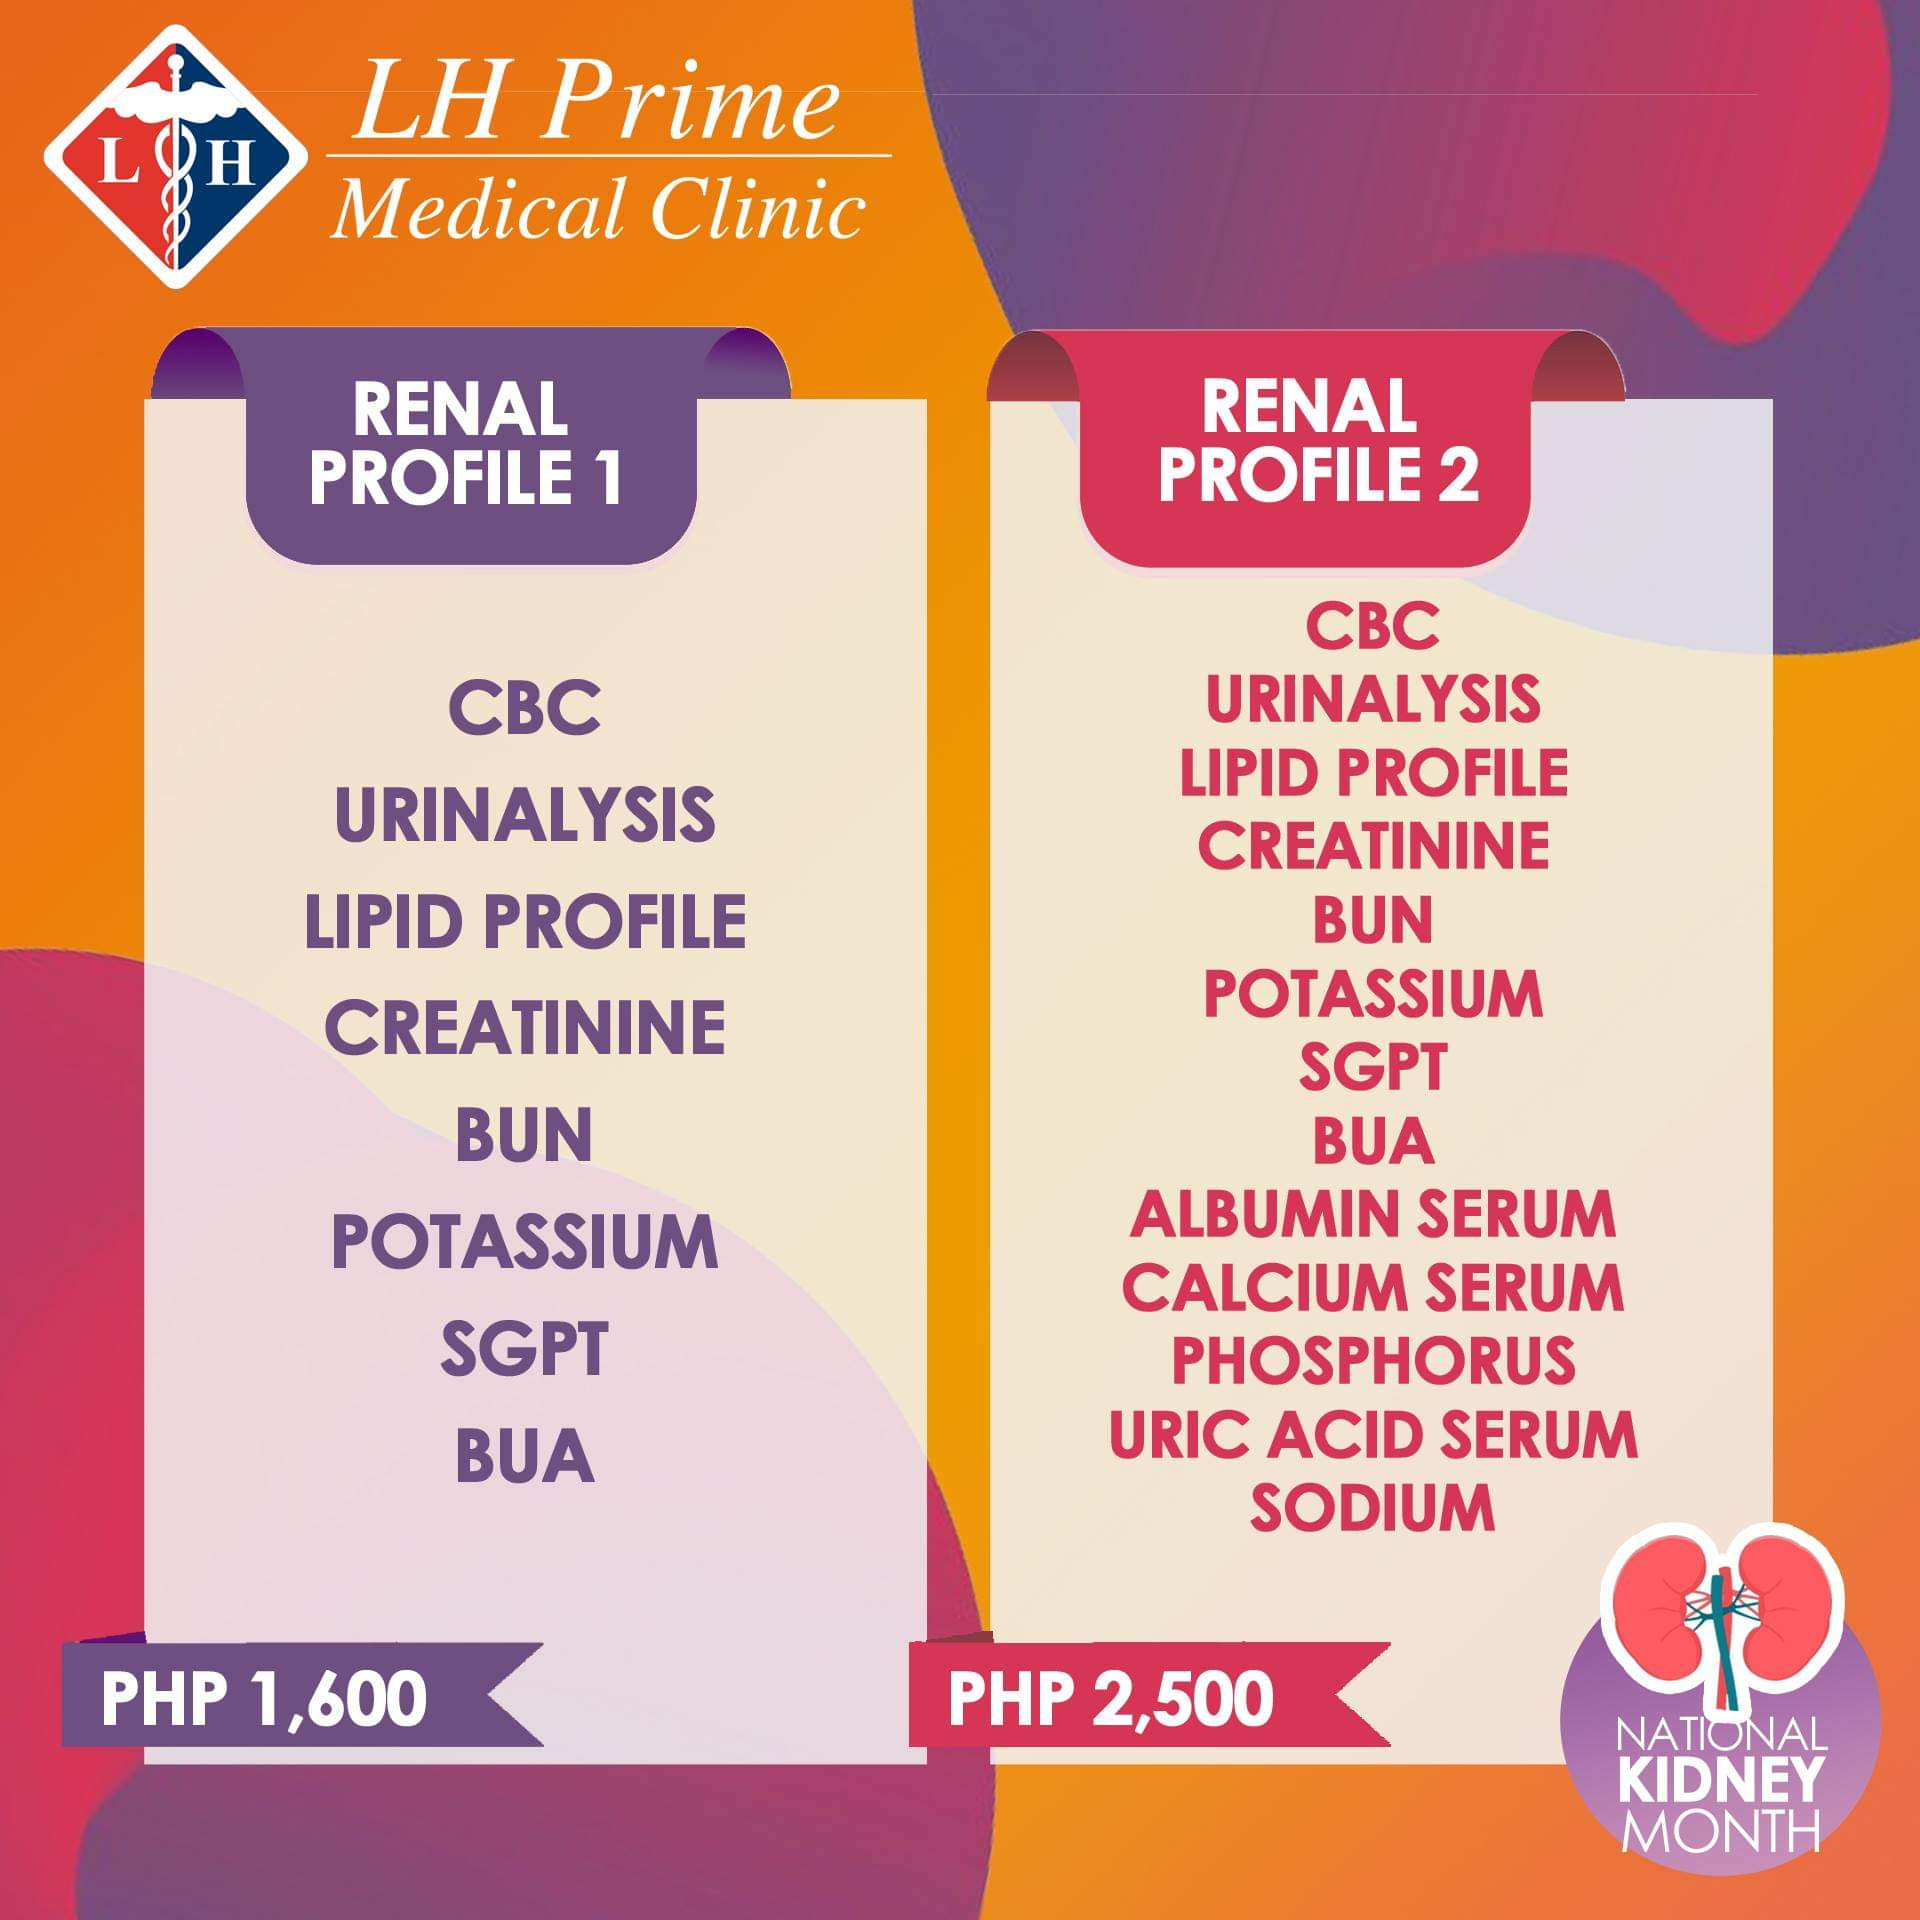 Kidney Health for Kids - Medical Tests LH Prime Medical Clinic